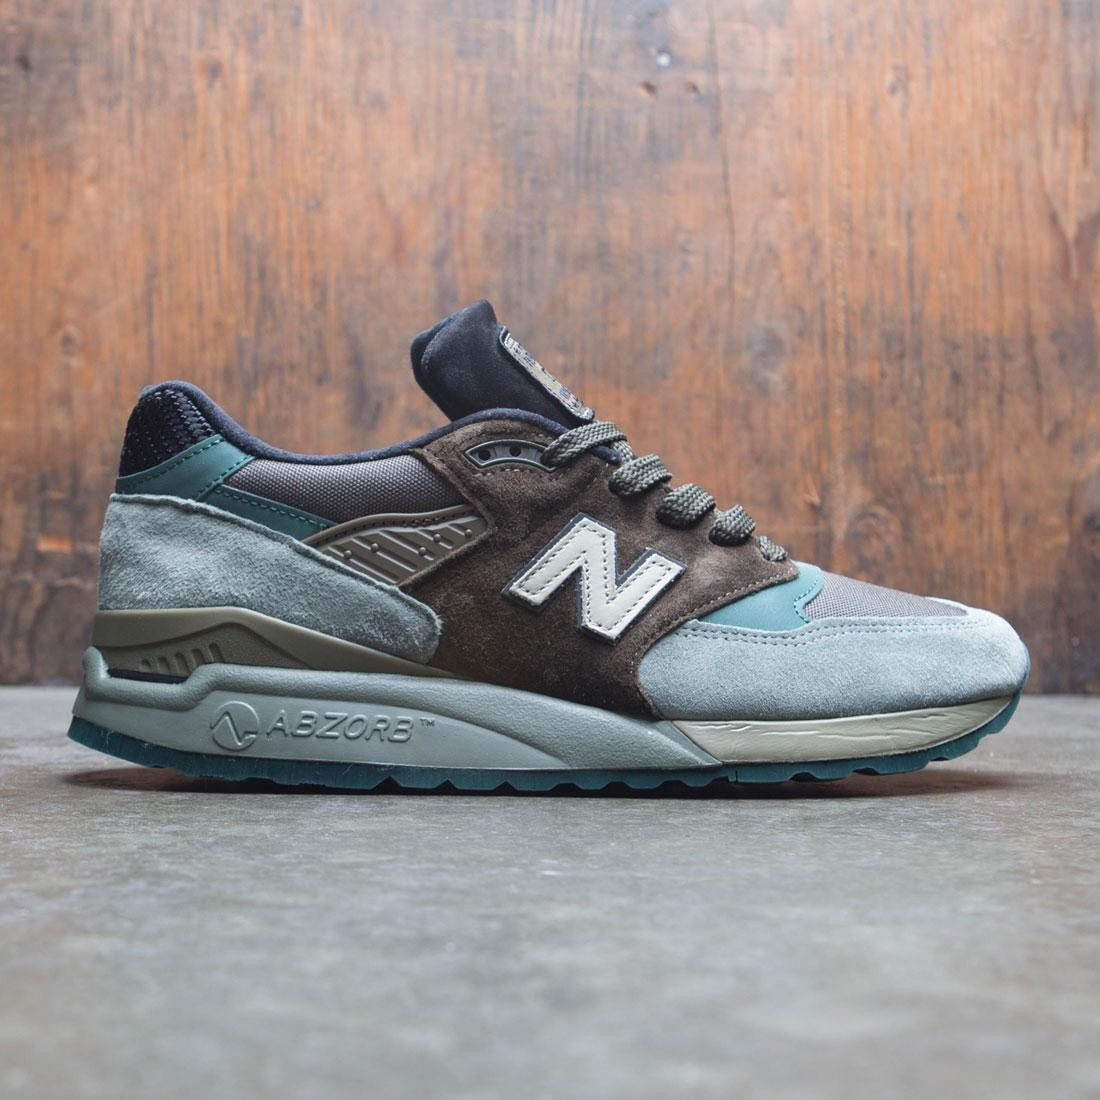 8f62cae64 New Balance Men 998 M998AWA - Made In USA brown grey